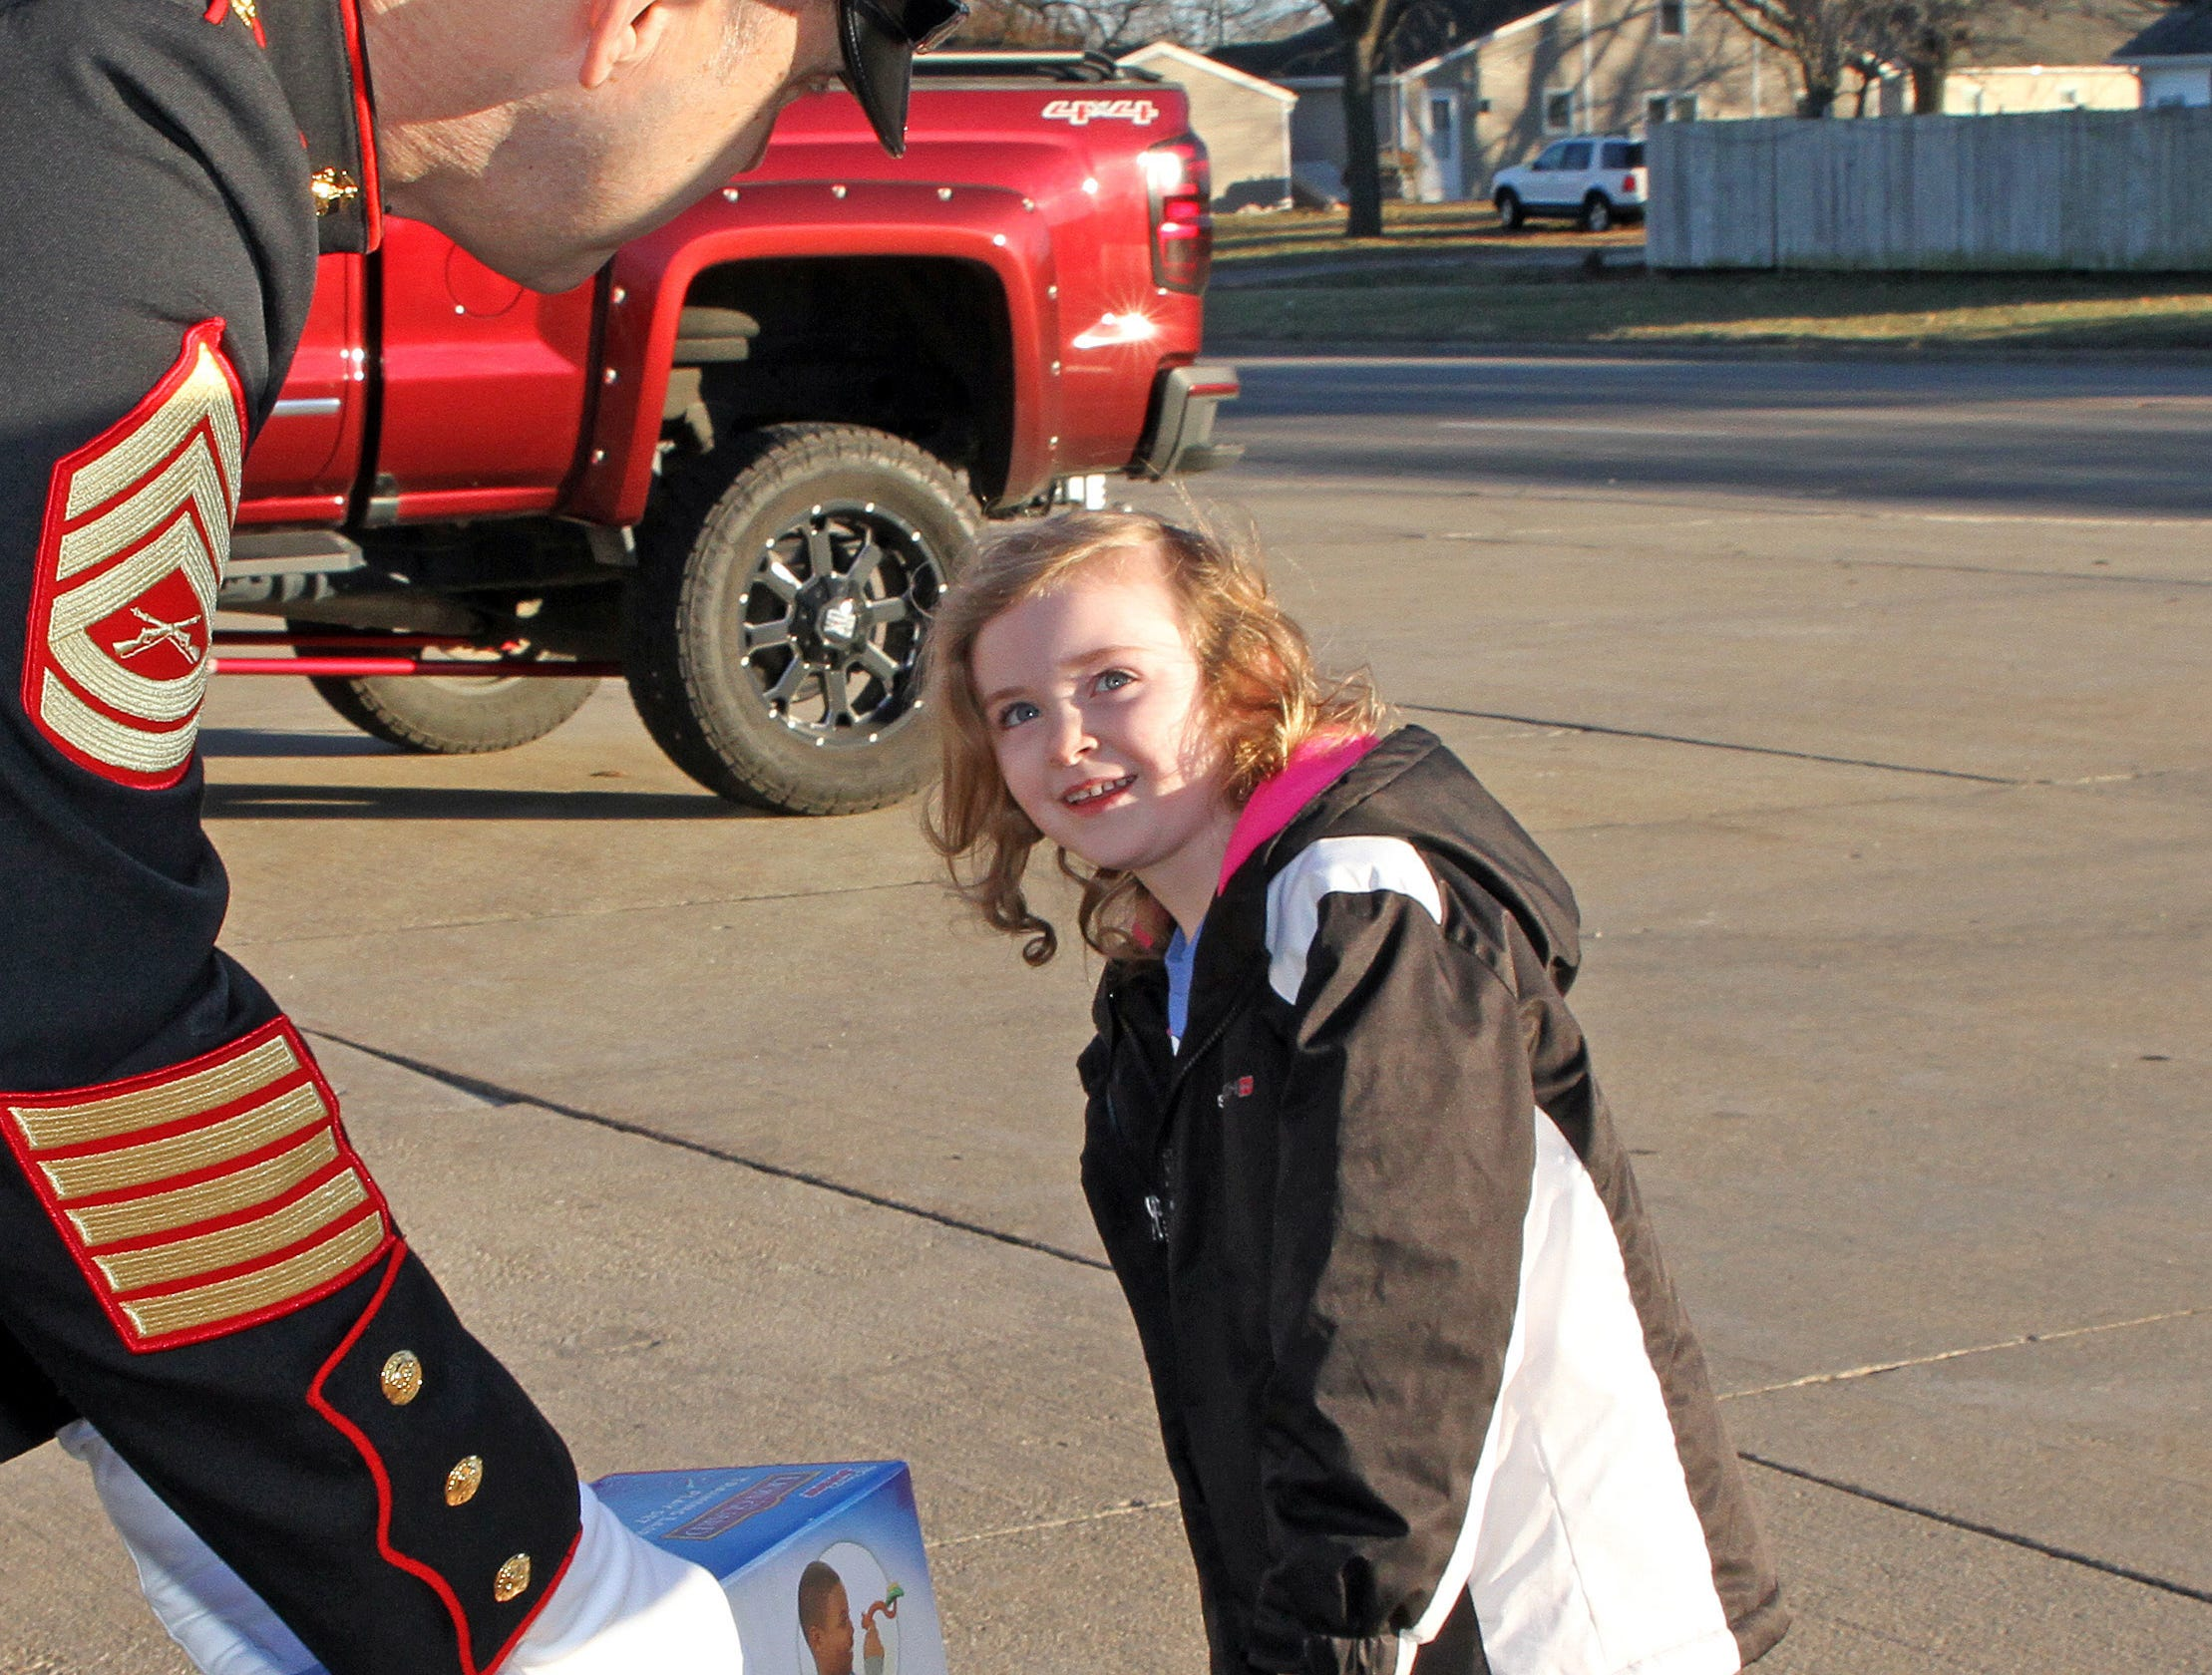 Elizabeth Bonham, 4, of Ankeny delivers presents to Retired Gunnery Sergeant Mark Amann of the U.S. Marines and current member of the Ankeny Fire Department as gifts are dropped off at Ankeny's fill the truck day during the U.S. Marine Corps Toys for Tots campaign at the Ankeny Fire Station Headquarters on Sunday, Dec. 16, 2018.